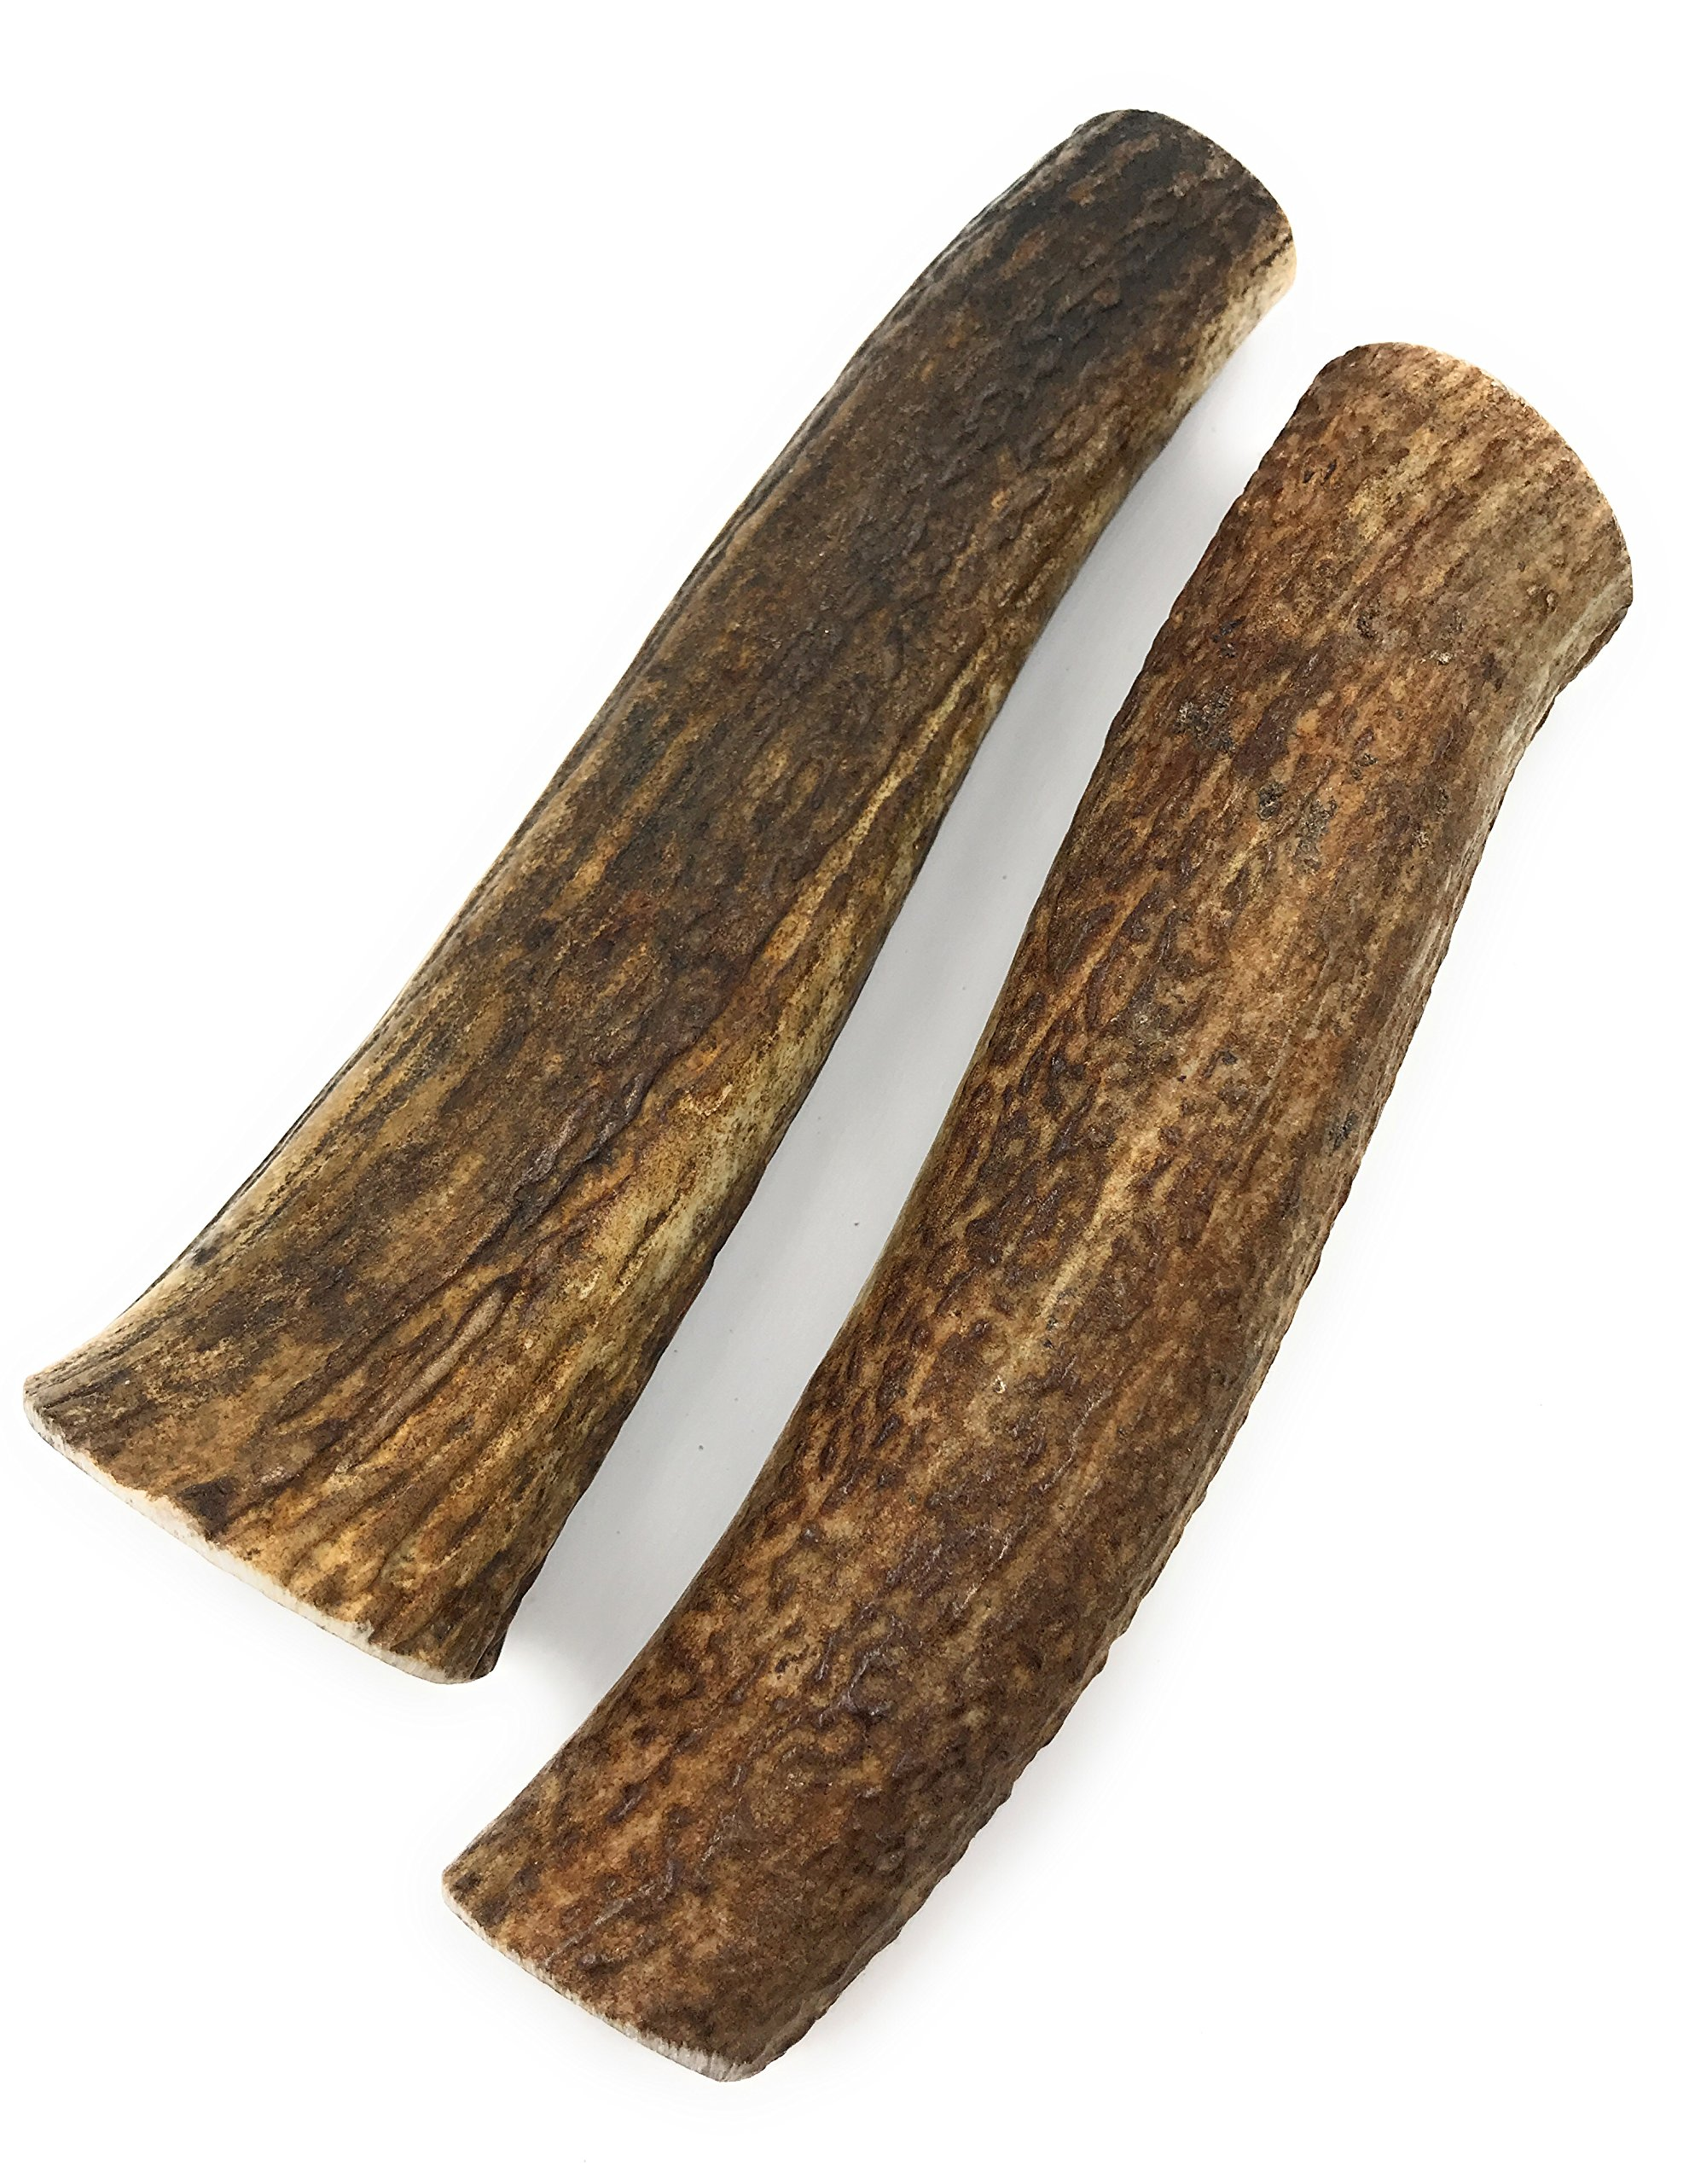 Elk Antlers for Dogs, Grade-A, Premium Antler Chews for Dogs (Large 2-Pack) by Heartland Antlers